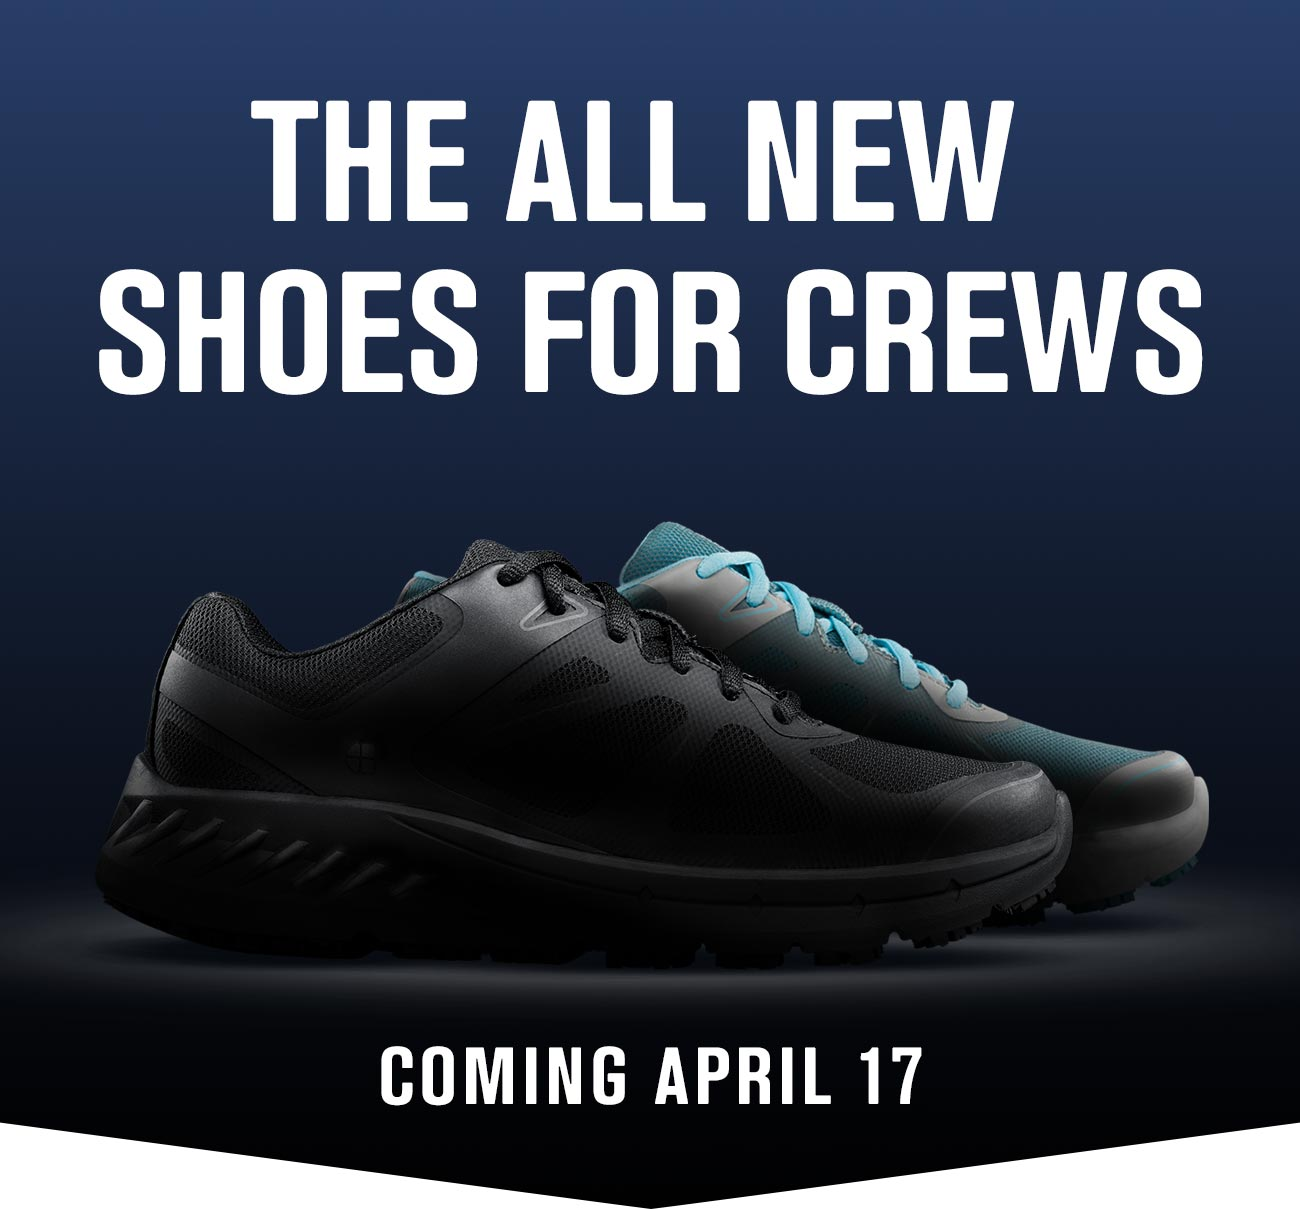 Like Shoes For Crews coupons? Try these...